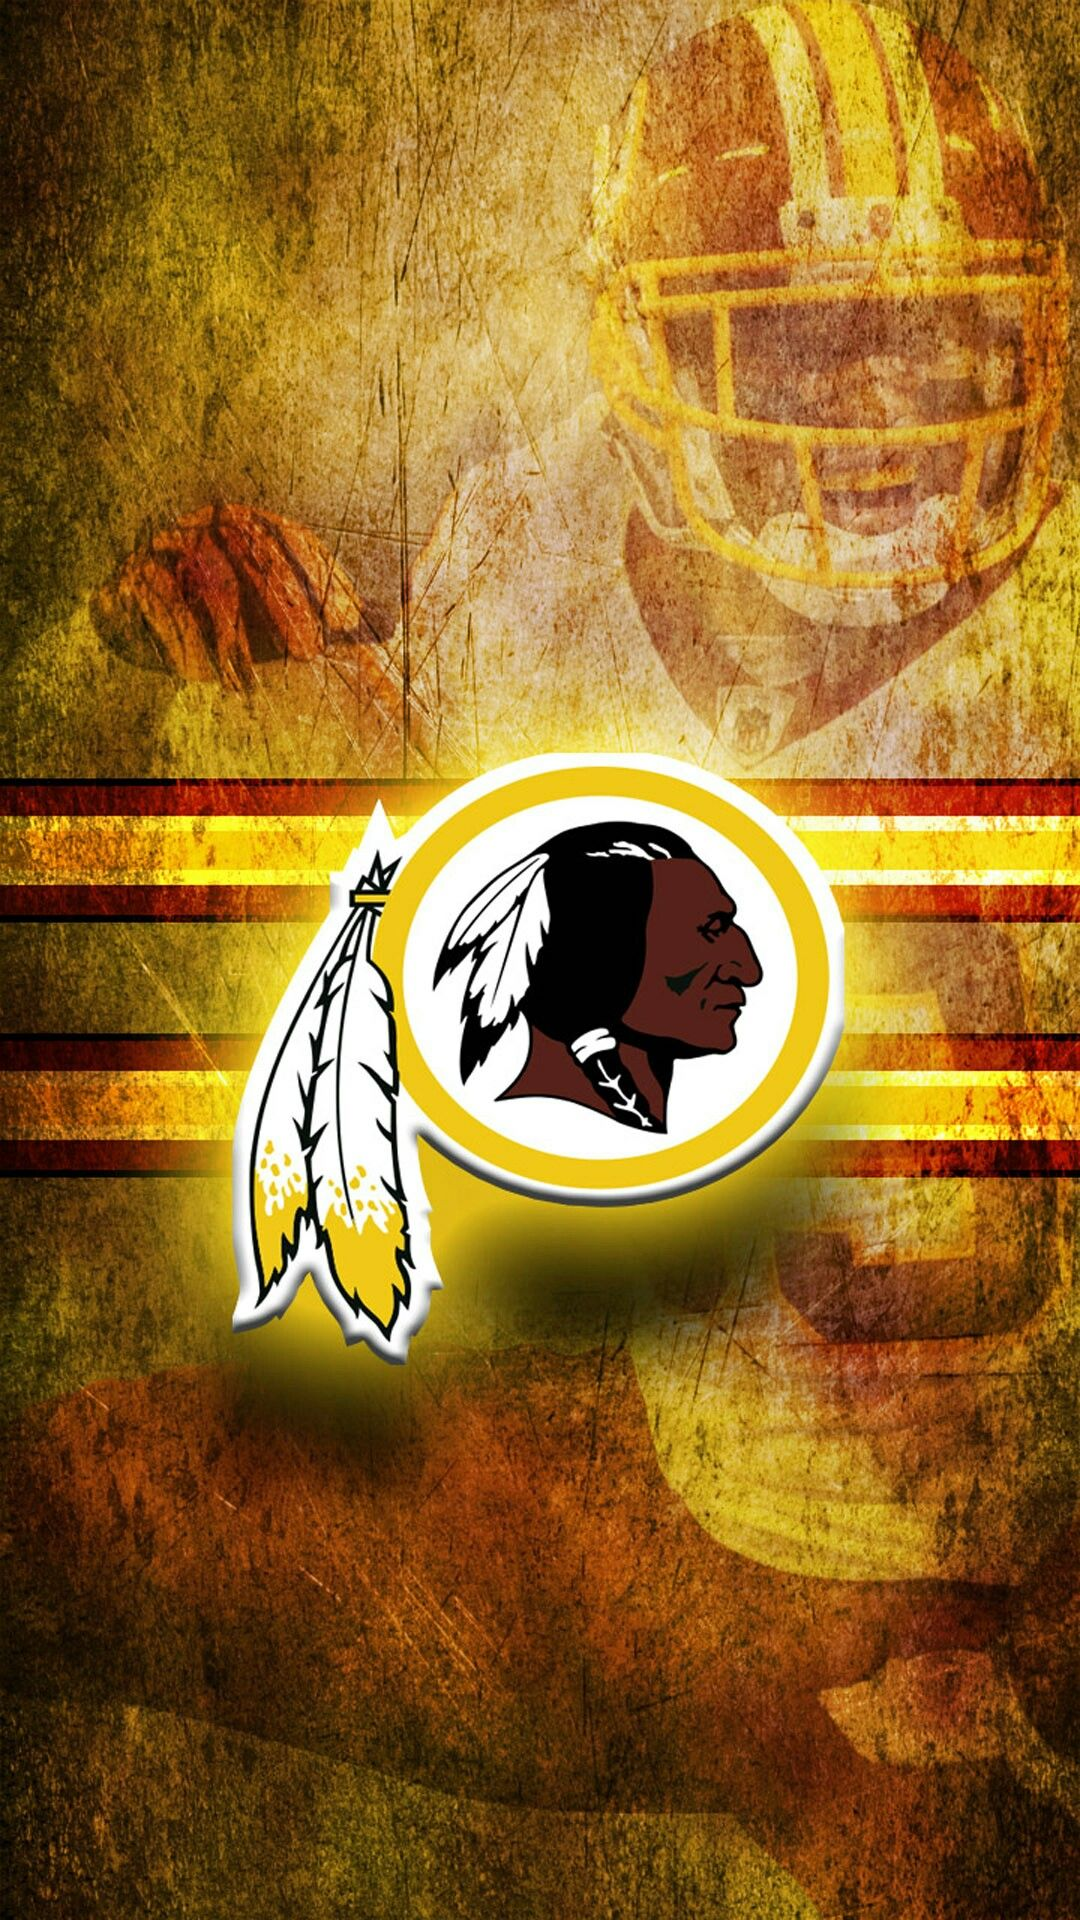 Go Skins Washington Redskins Redskins